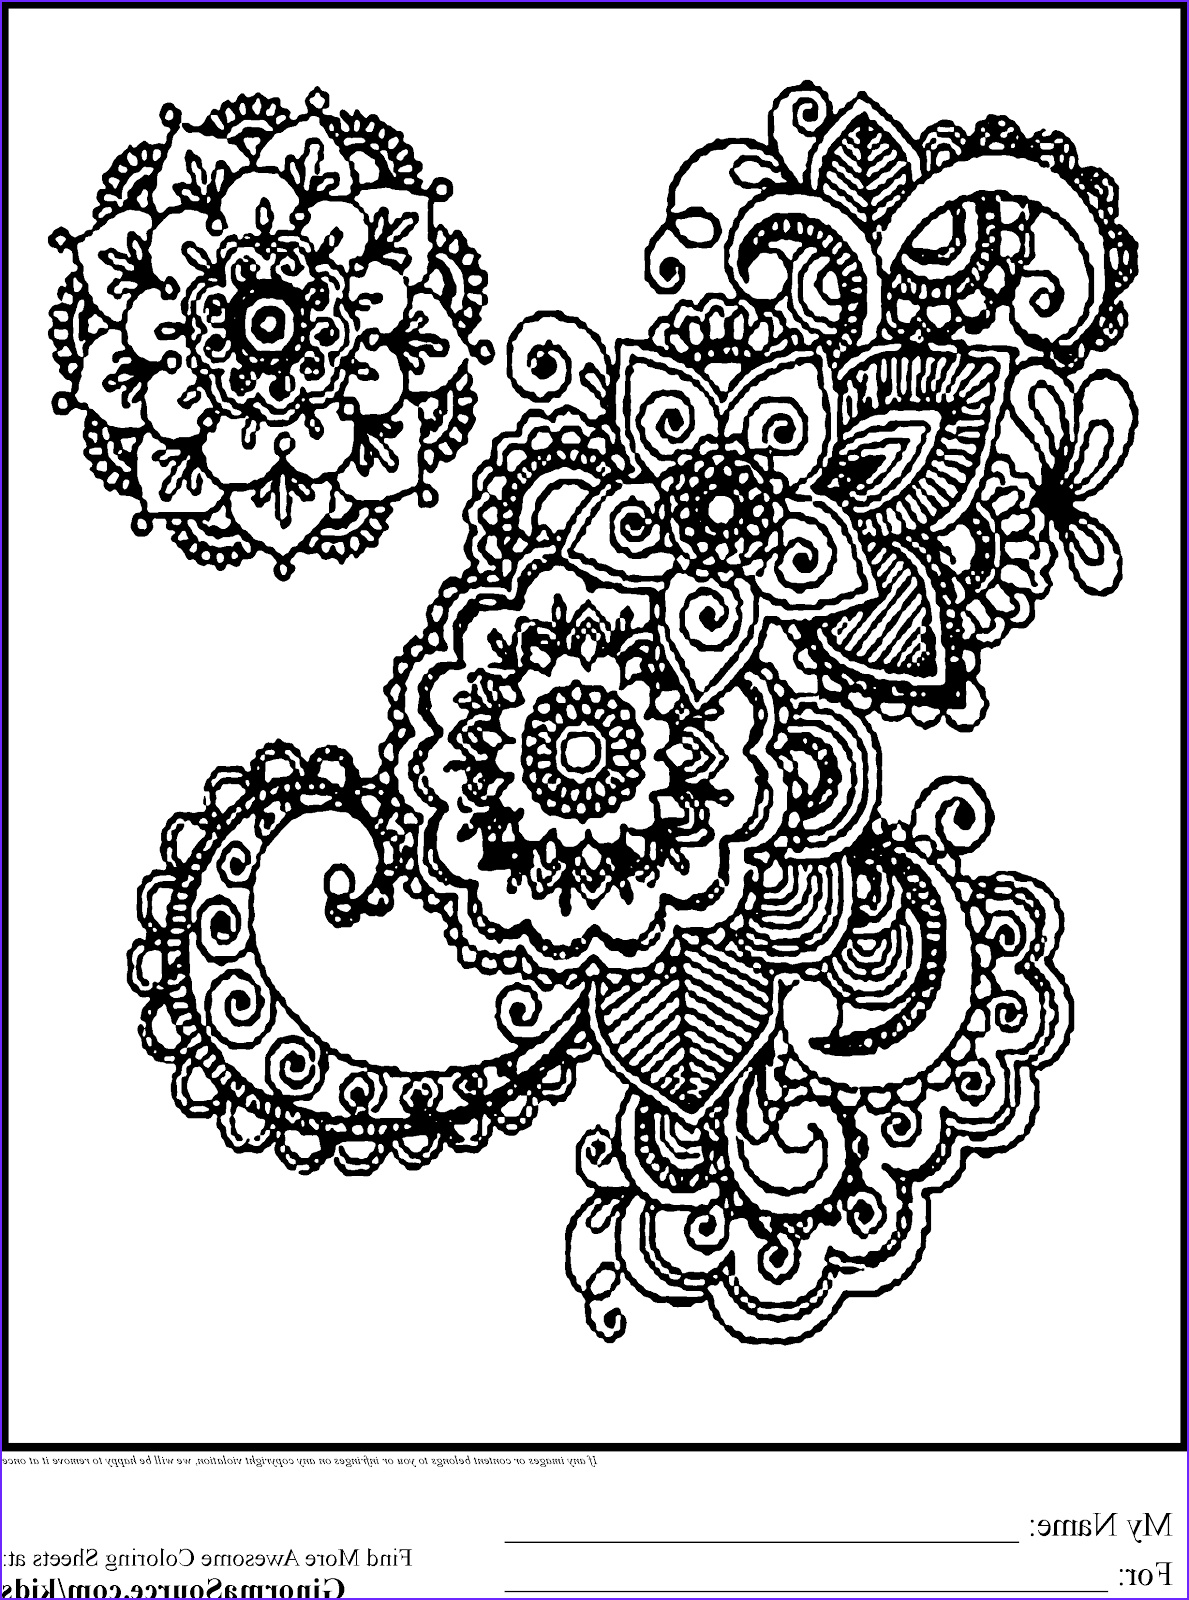 Coloring Books for Teens Luxury Photos Advanced Coloring Pages for Adults Free Coloring Pages